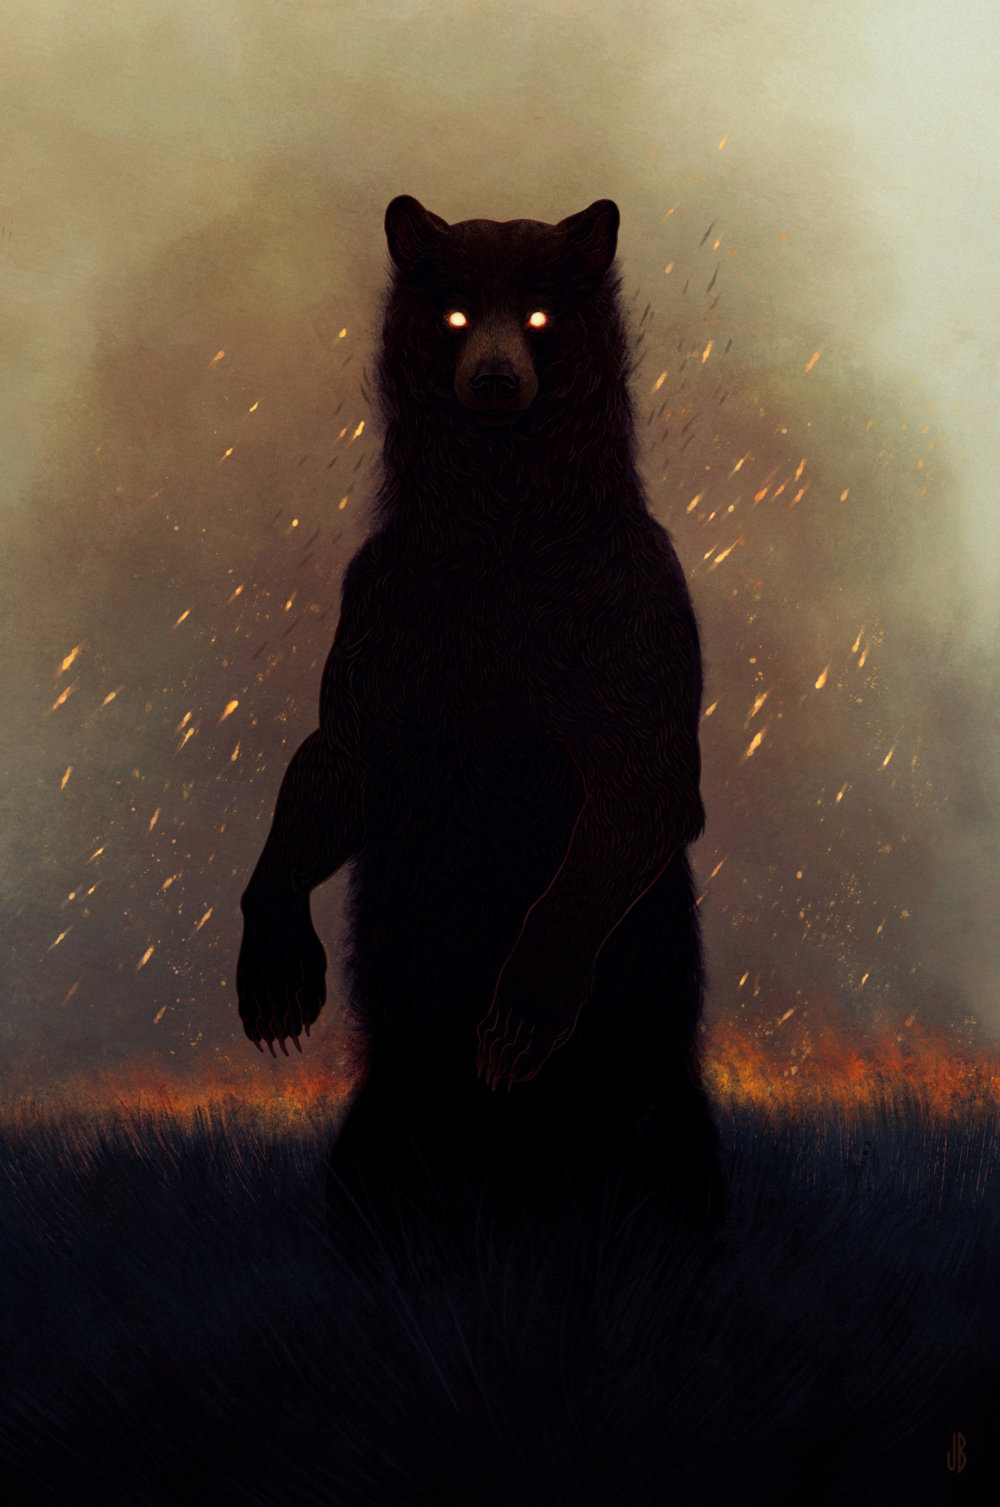 Mysterious And Shadowy Animal Illustrations By Jenna Barton 4